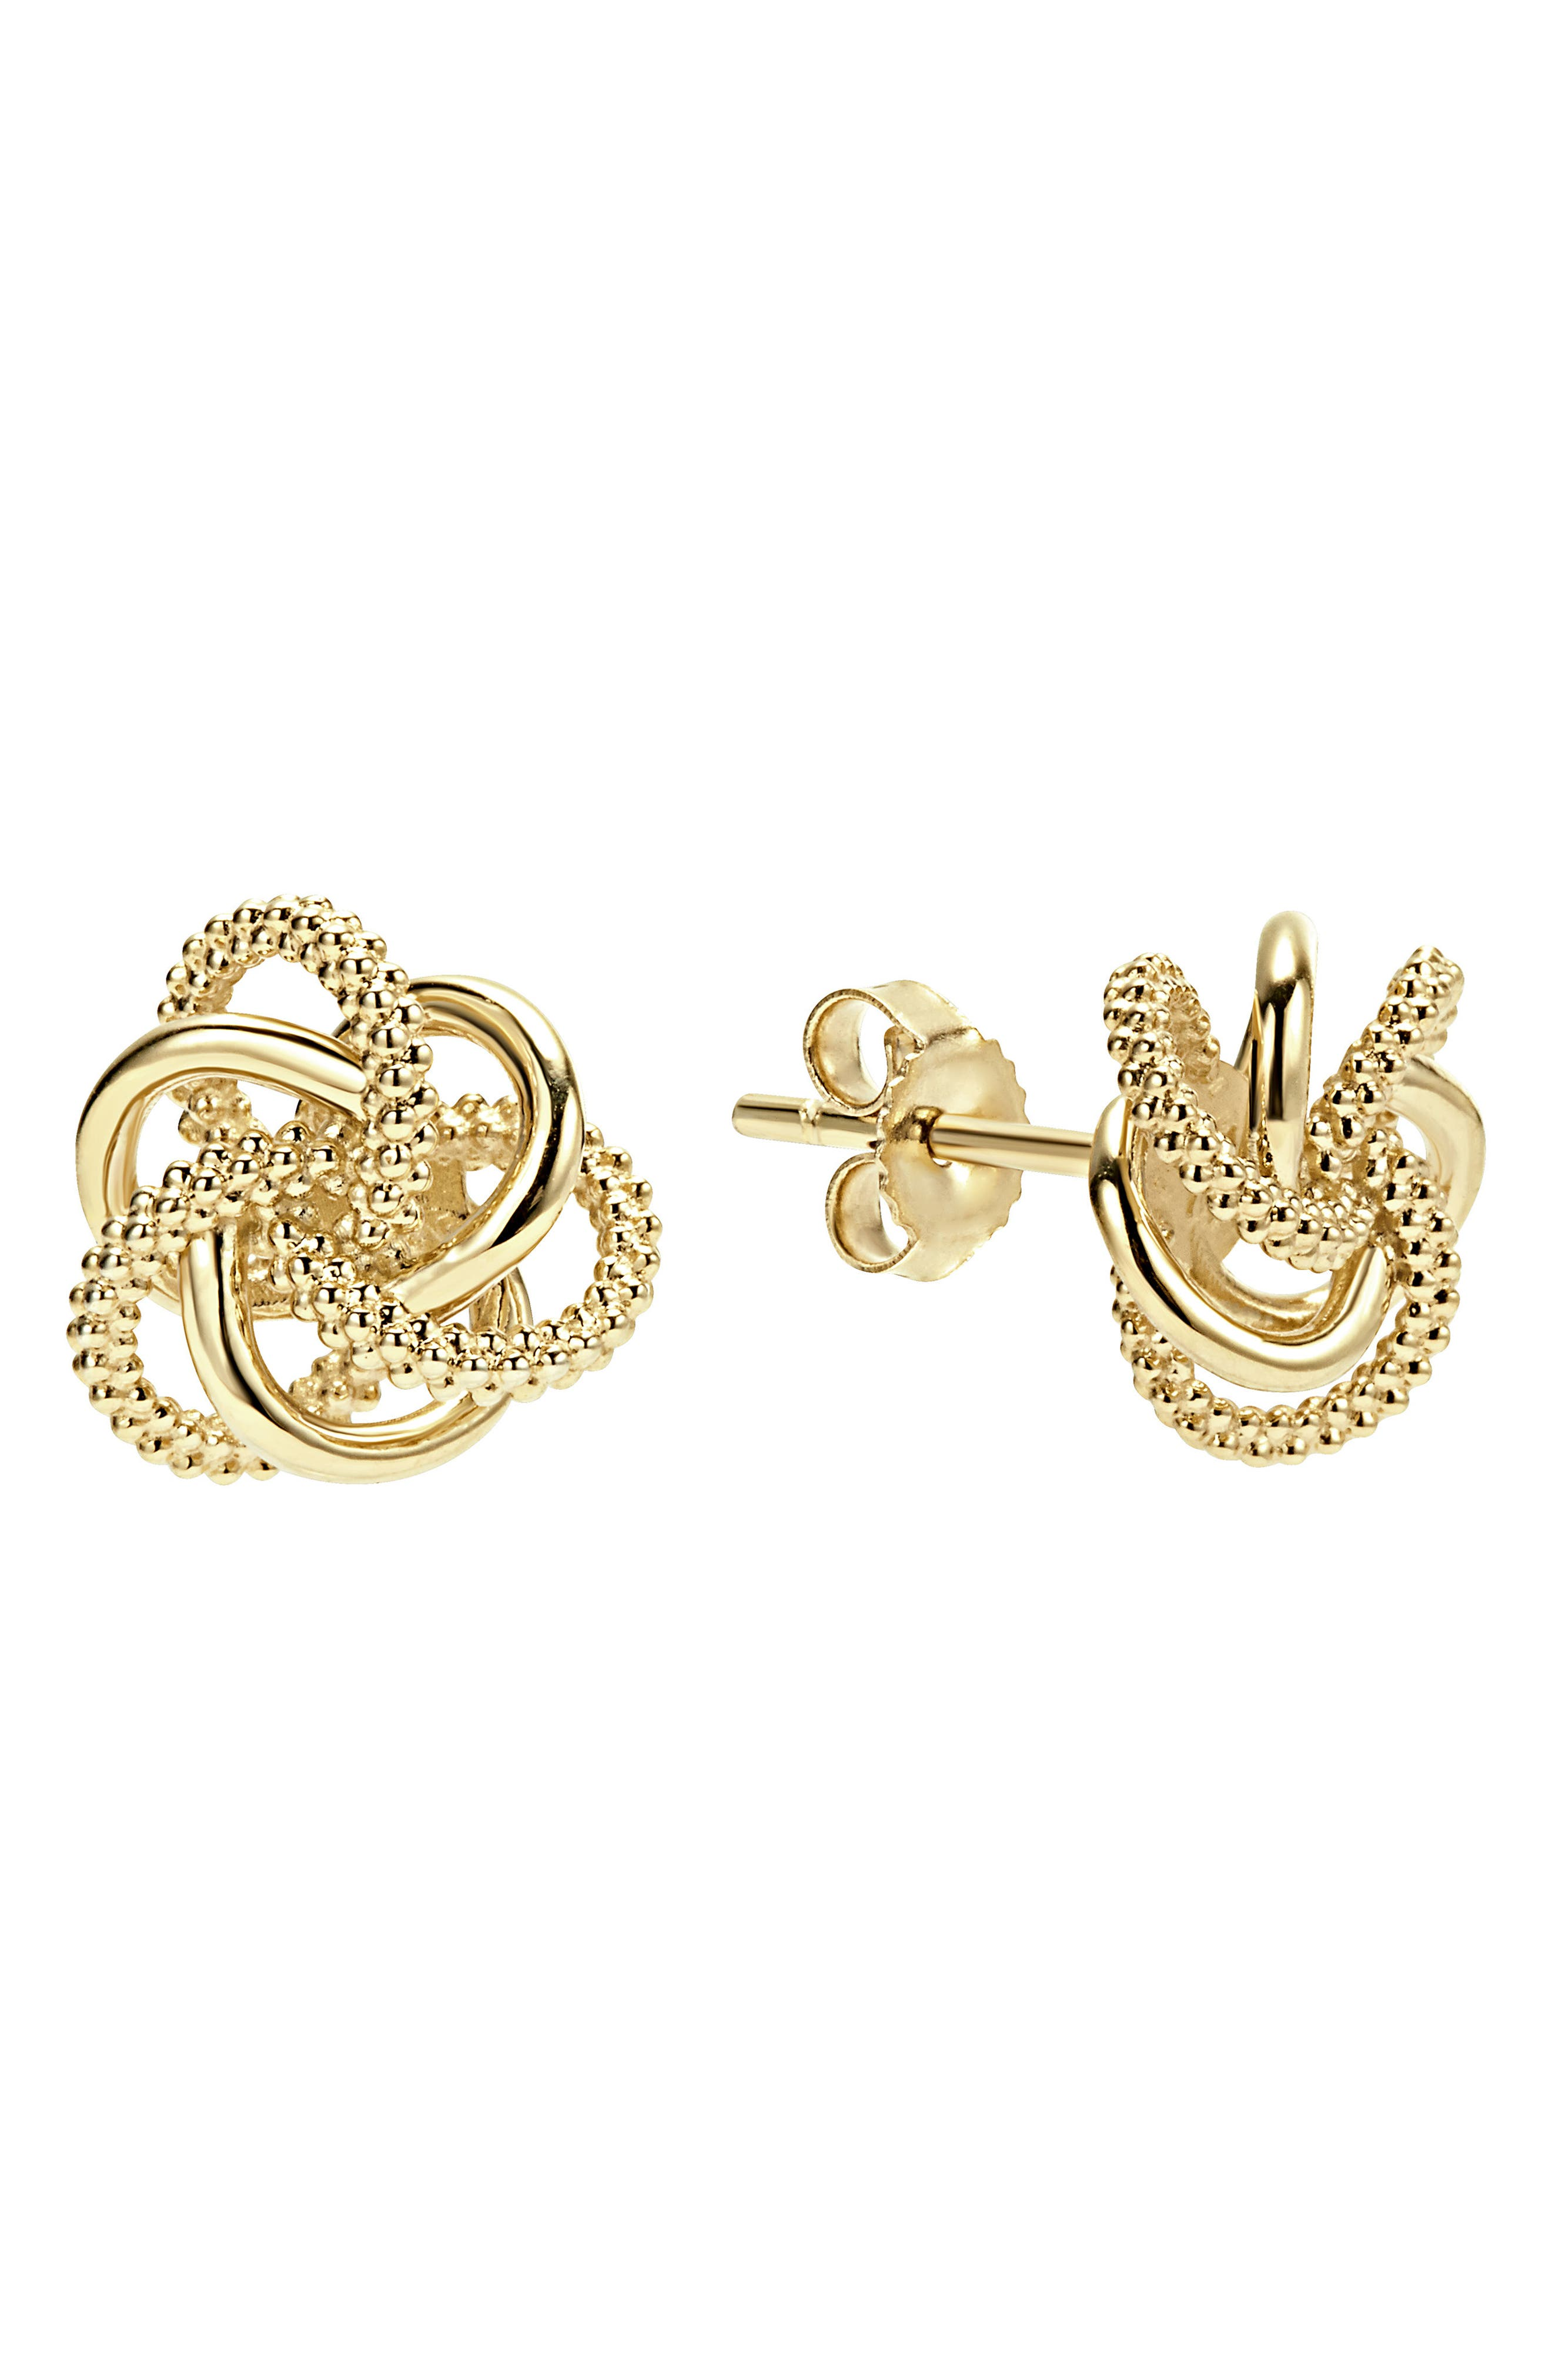 'Love Knot' 18k Gold Stud Earrings,                             Alternate thumbnail 6, color,                             GOLD